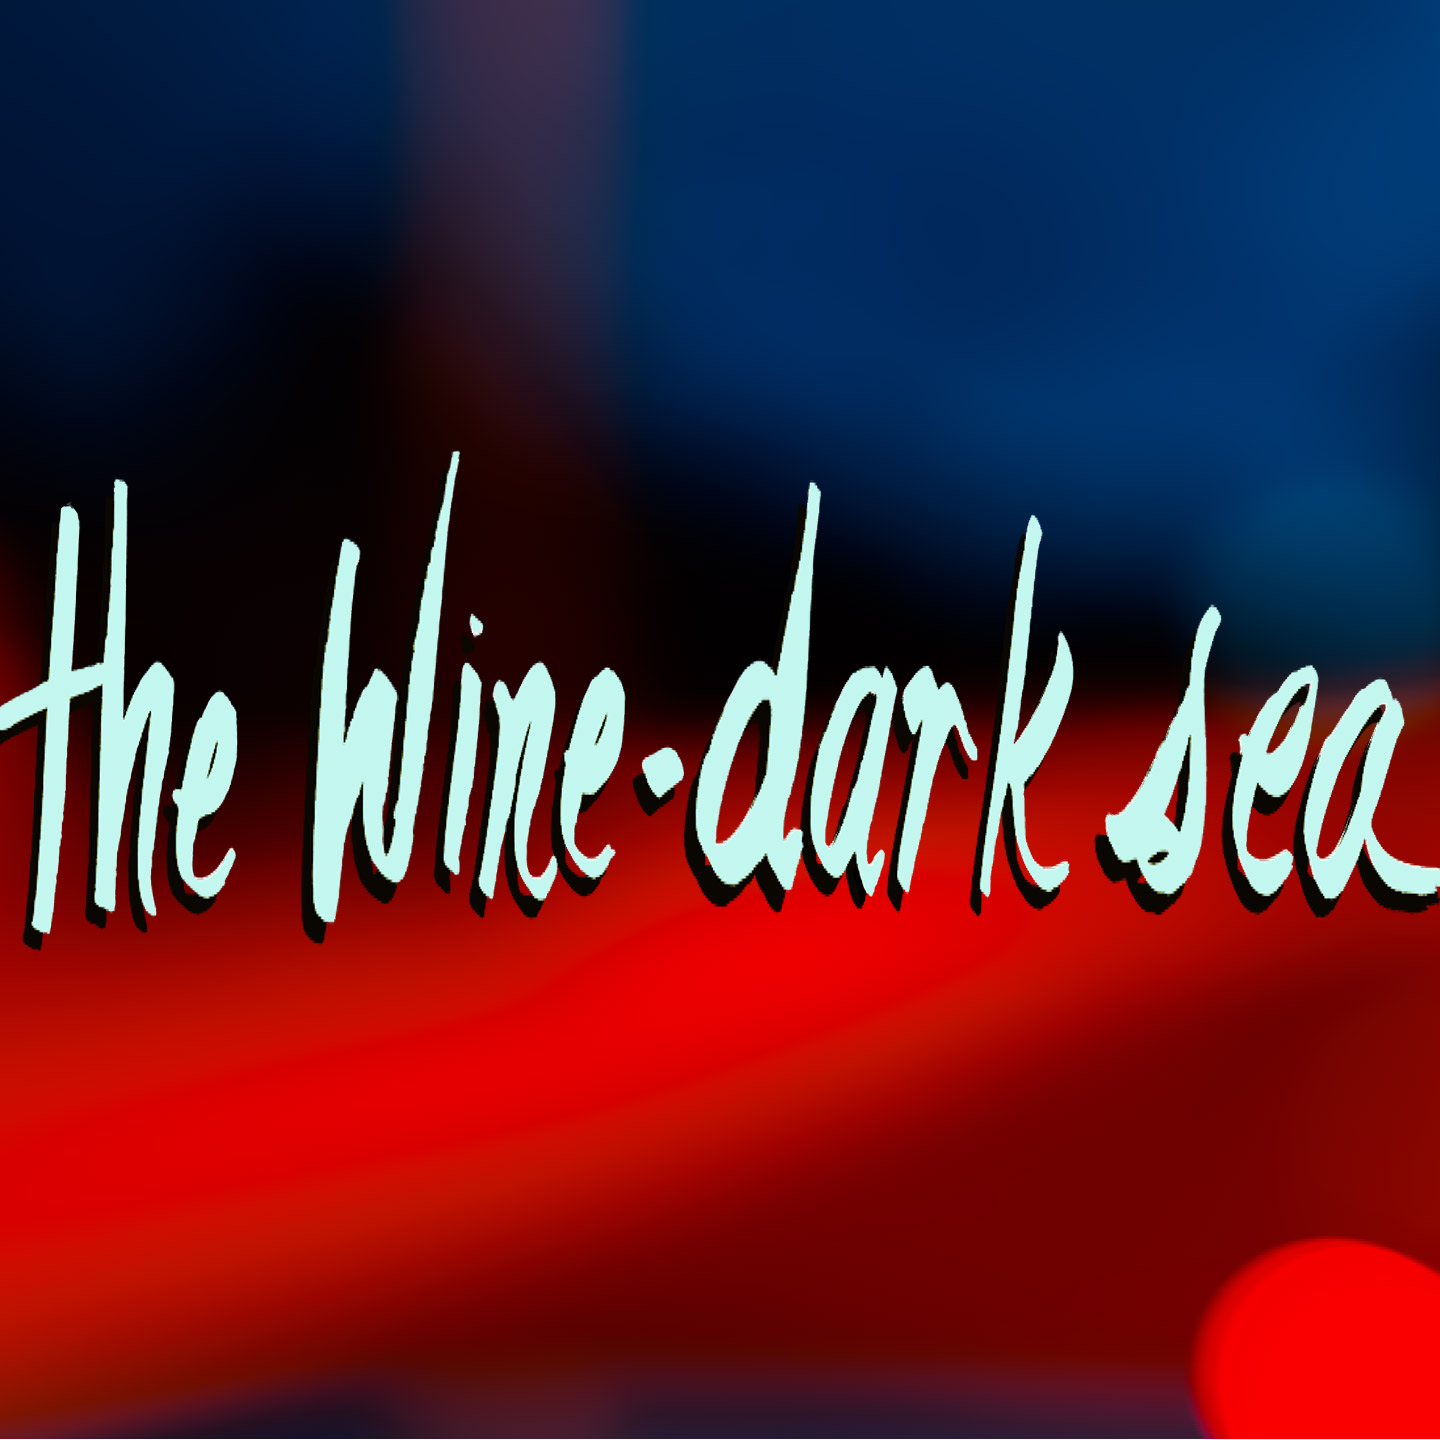 http://indiemusicpeople.com/Uploads/The_Wine_Dark_Sea_-_indie_image1.jpg